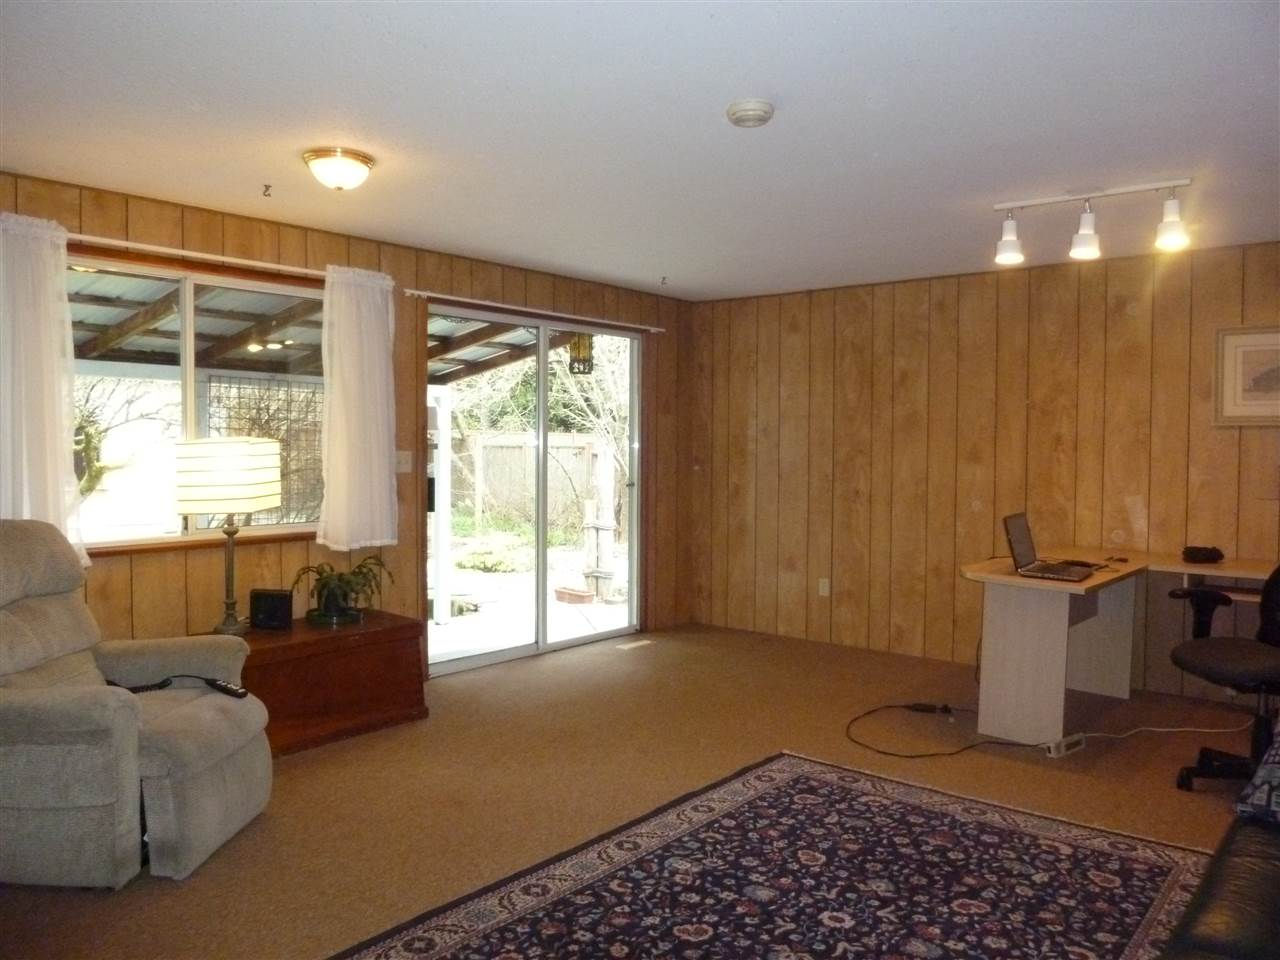 "Photo 5: Photos: 5675 SURF Circle in Sechelt: Sechelt District Manufactured Home for sale in ""SECHELT"" (Sunshine Coast)  : MLS® # R2143216"